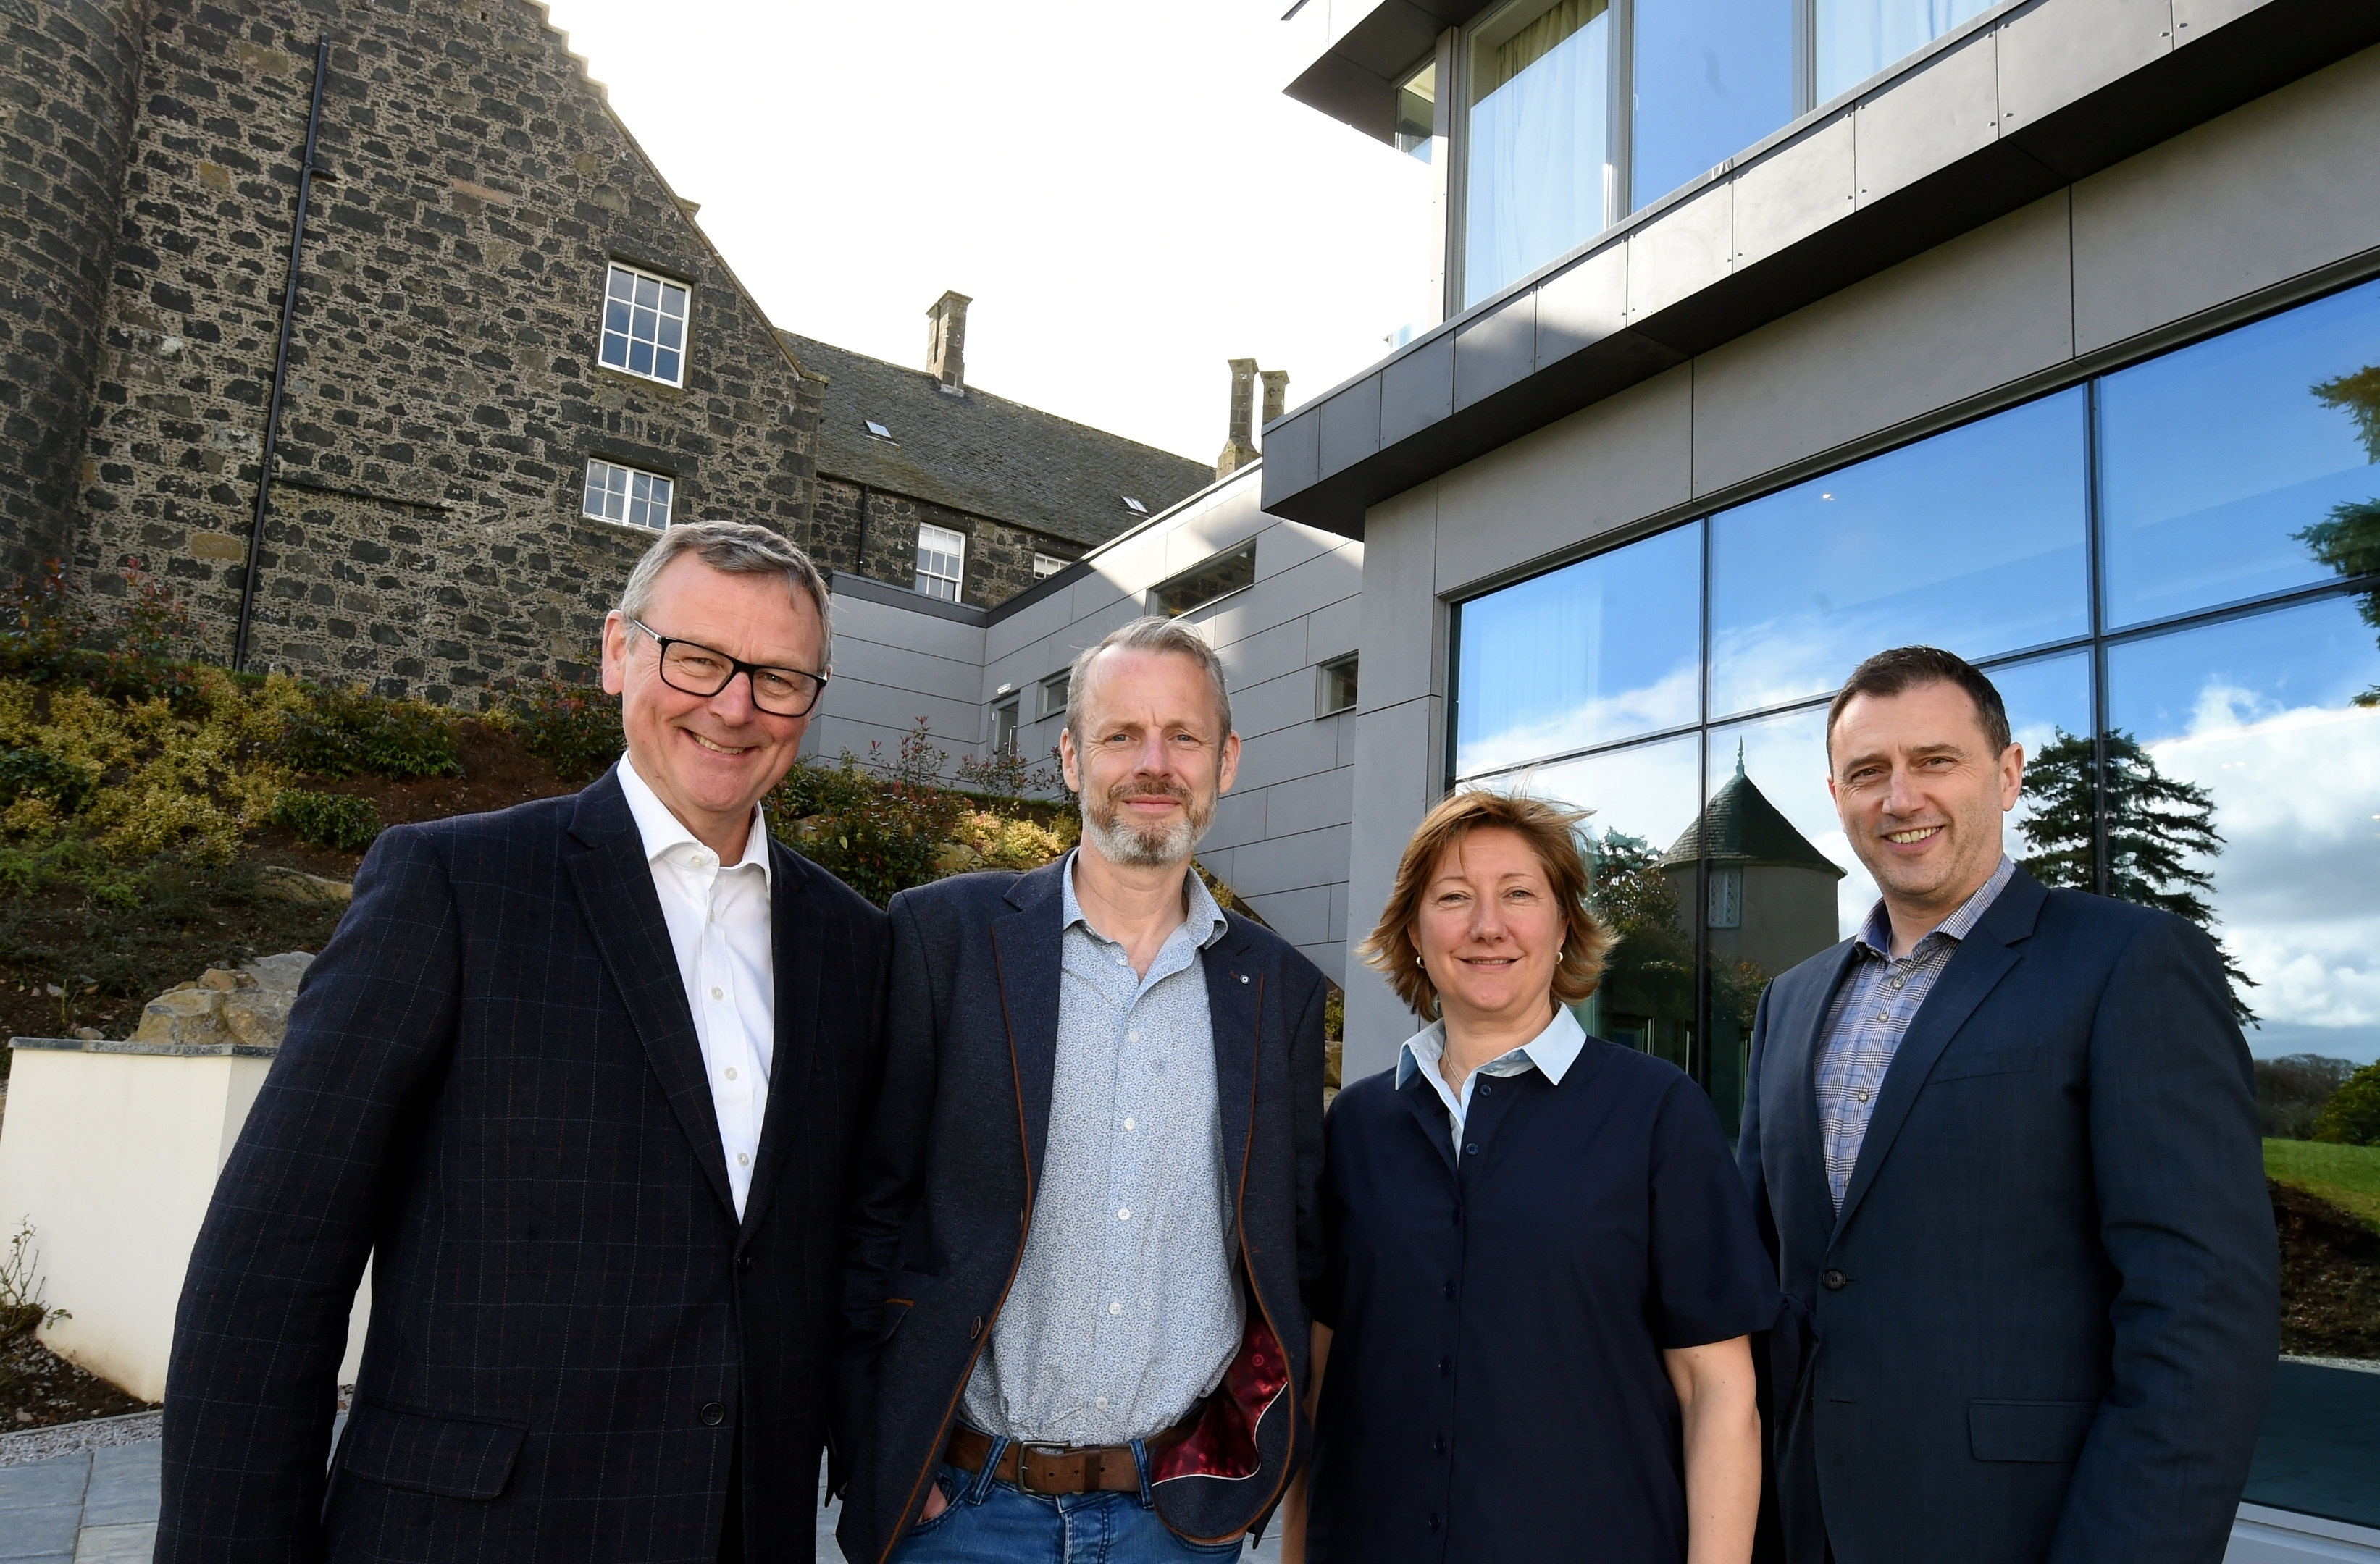 The Visit Aberdeenshire Tourism conference at Meldrum House, Oldmeldrum. In the picture are from left: Colin Crosby, chairman, Visit Aberdeenshire: Justin Reid, head of destinations, trip advisor: Clare Bruce, vice chairman, Visit Aberdeenshire and Russell Borthwick, Aberdeen and Grampian chamber of Commerce.